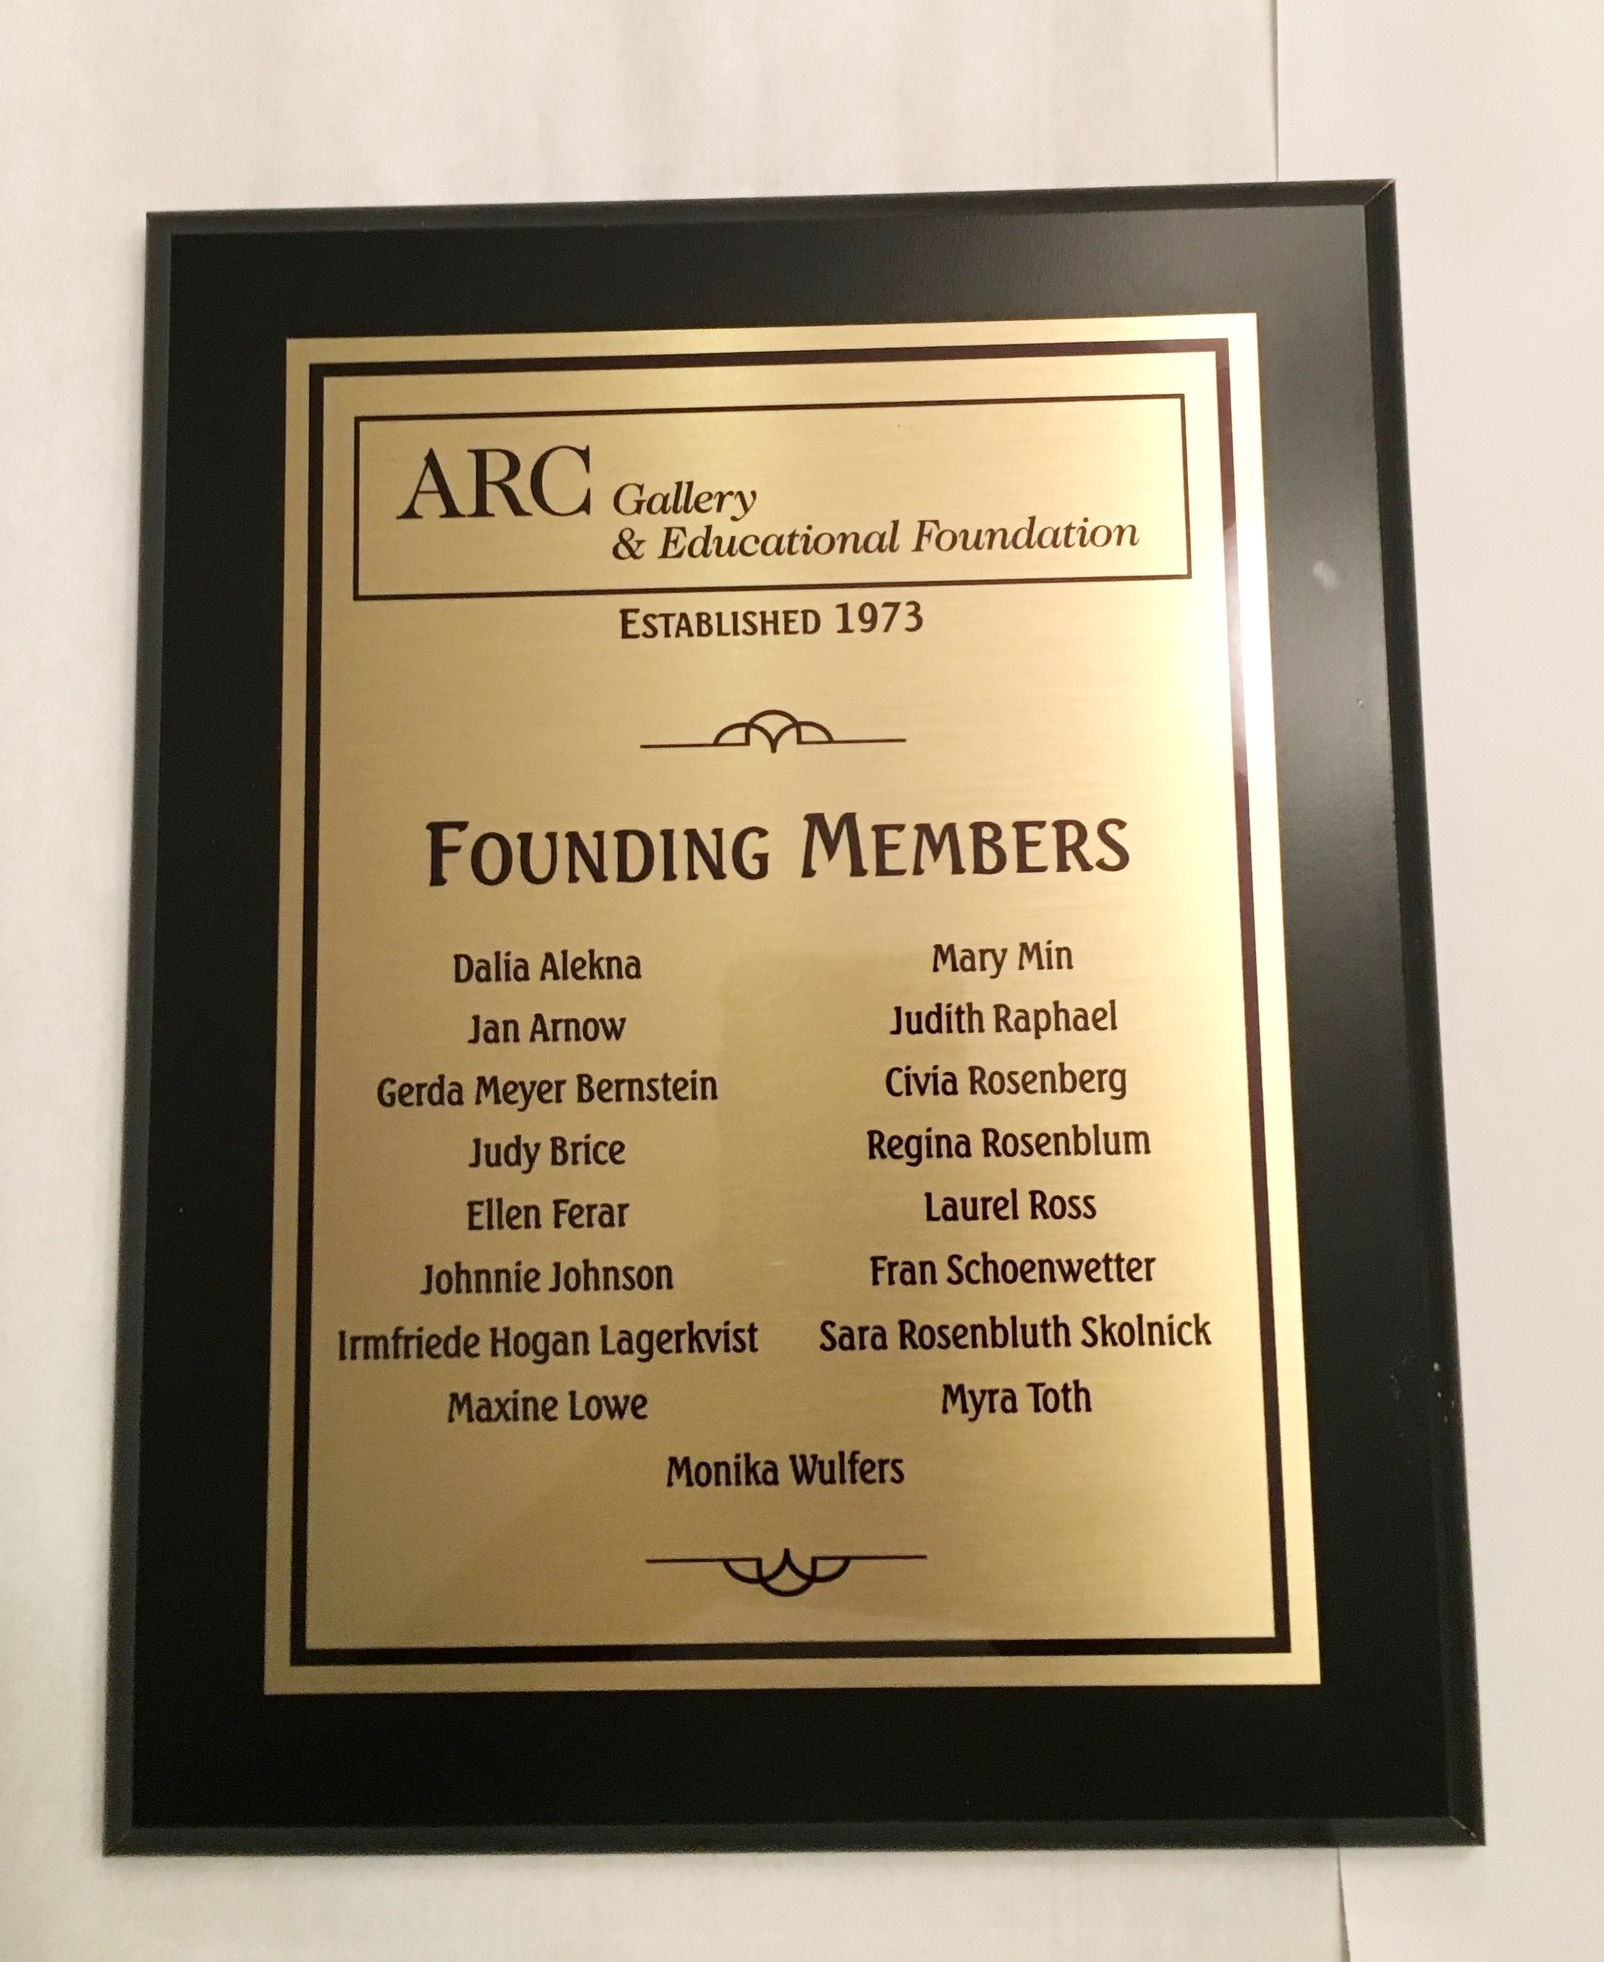 A plaque recognizing the founding members of ARC